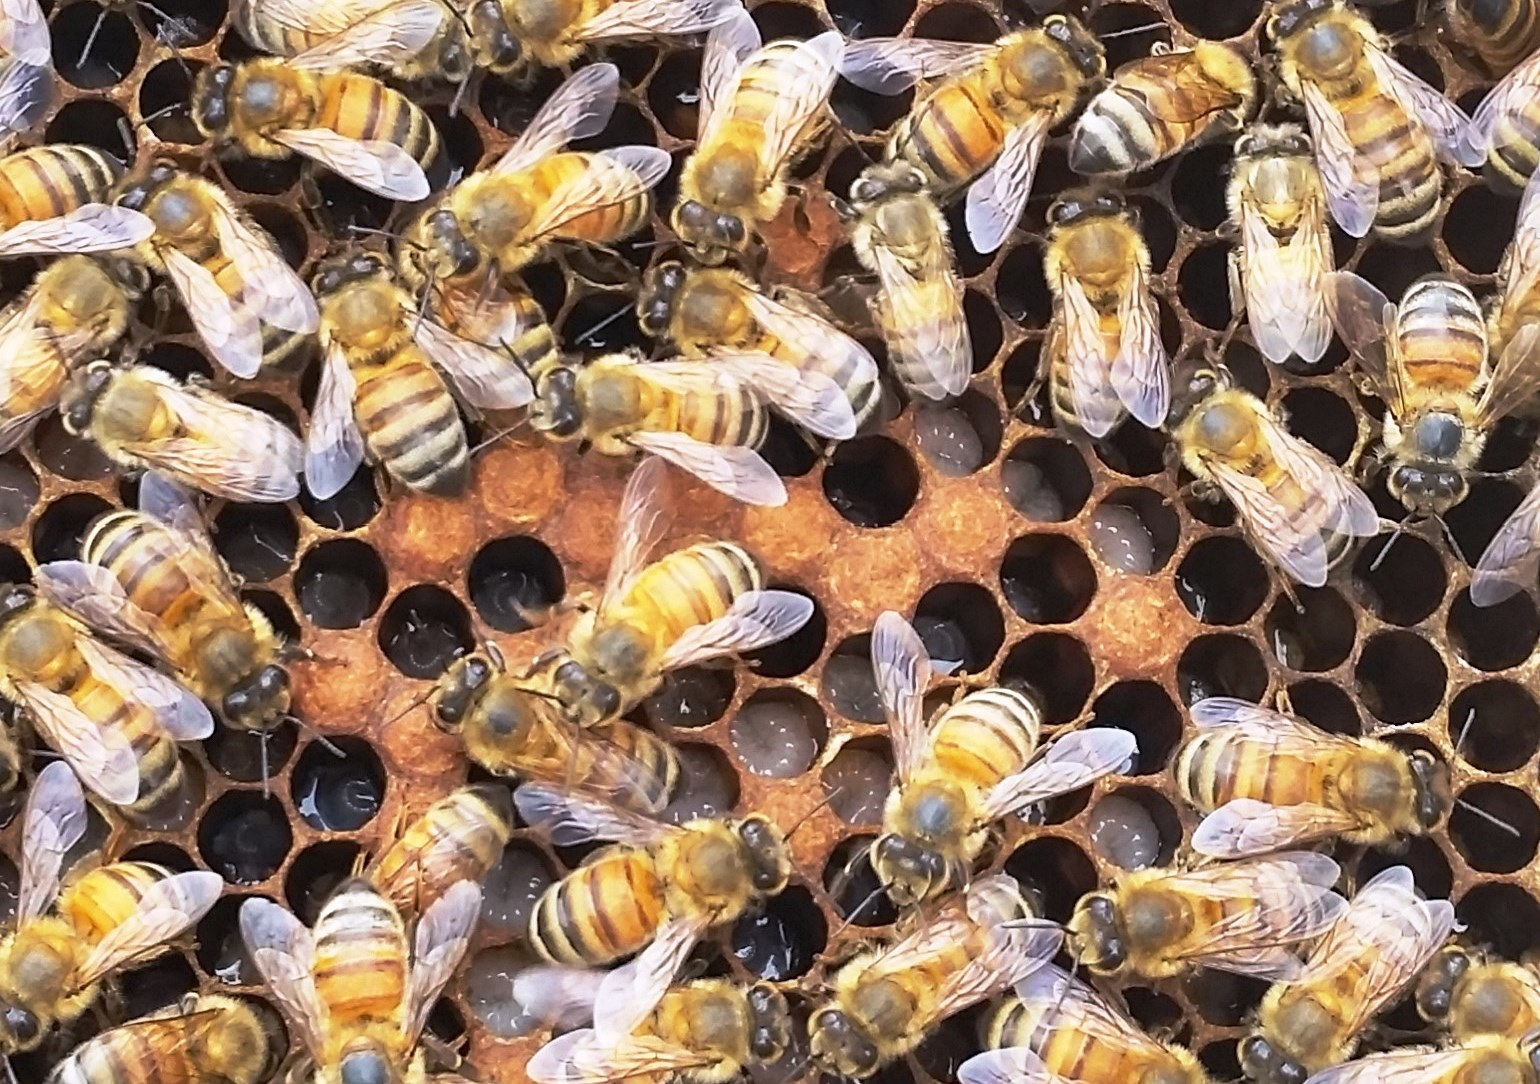 Bees and Brood. Photo by Judy Biss